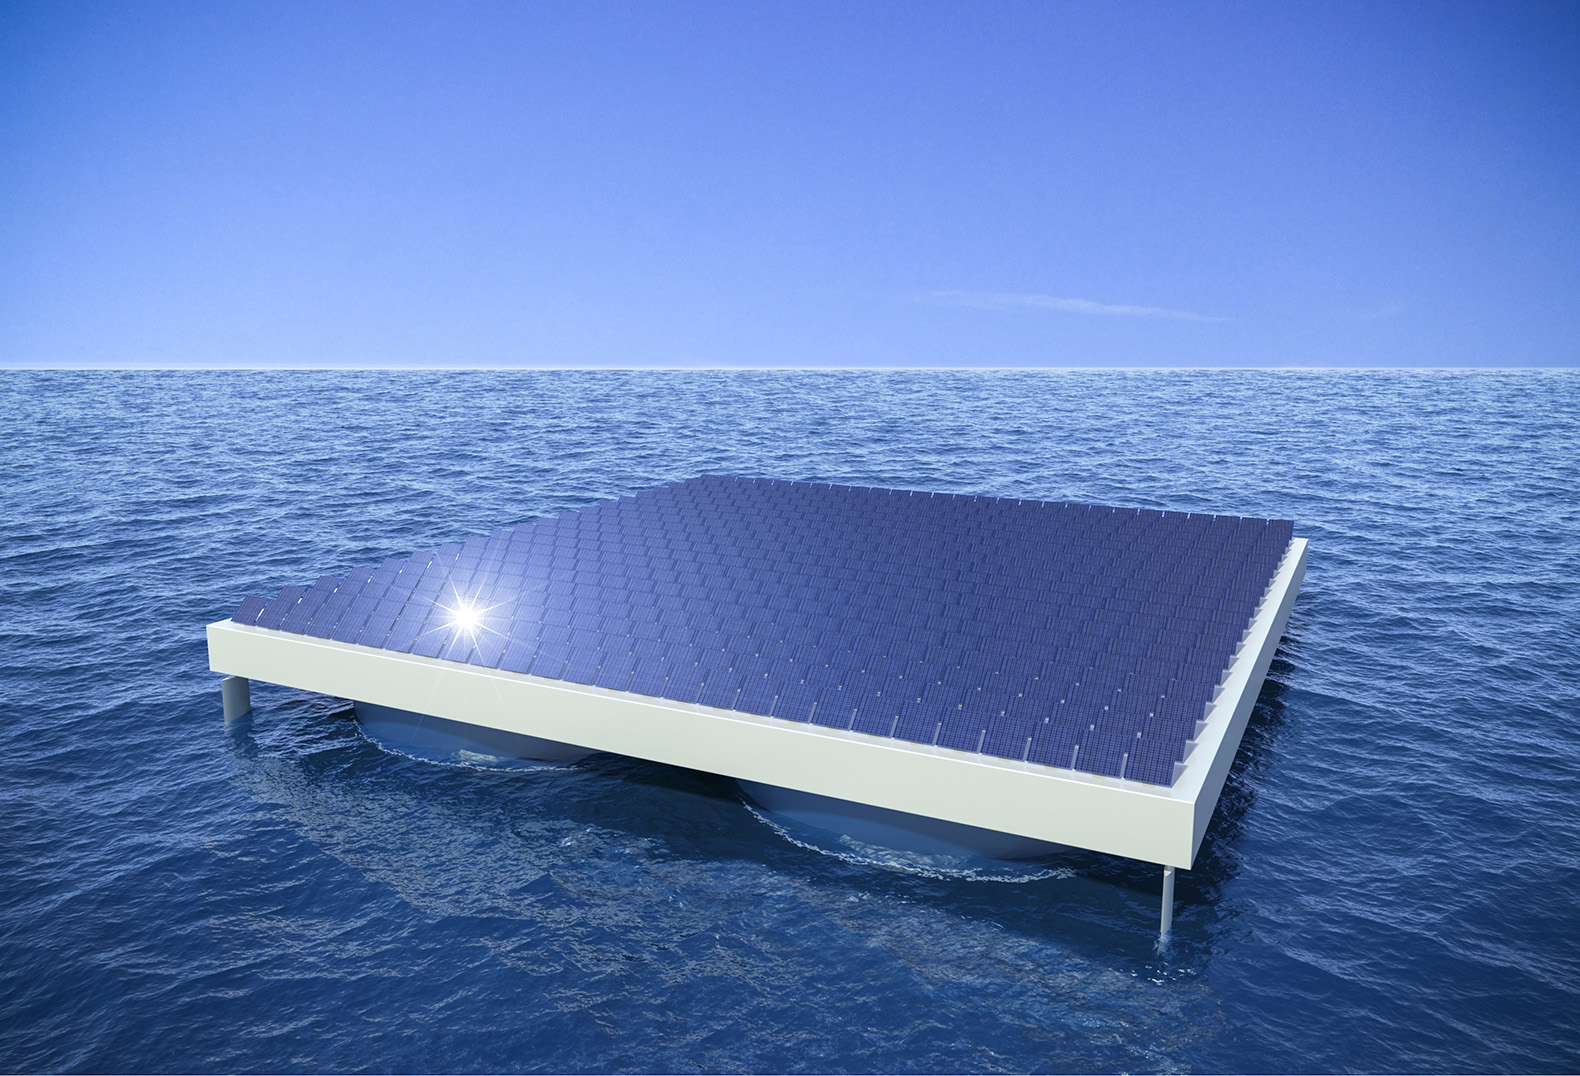 Heliofloat Tech Could Keep Solar Panels Afloat On The